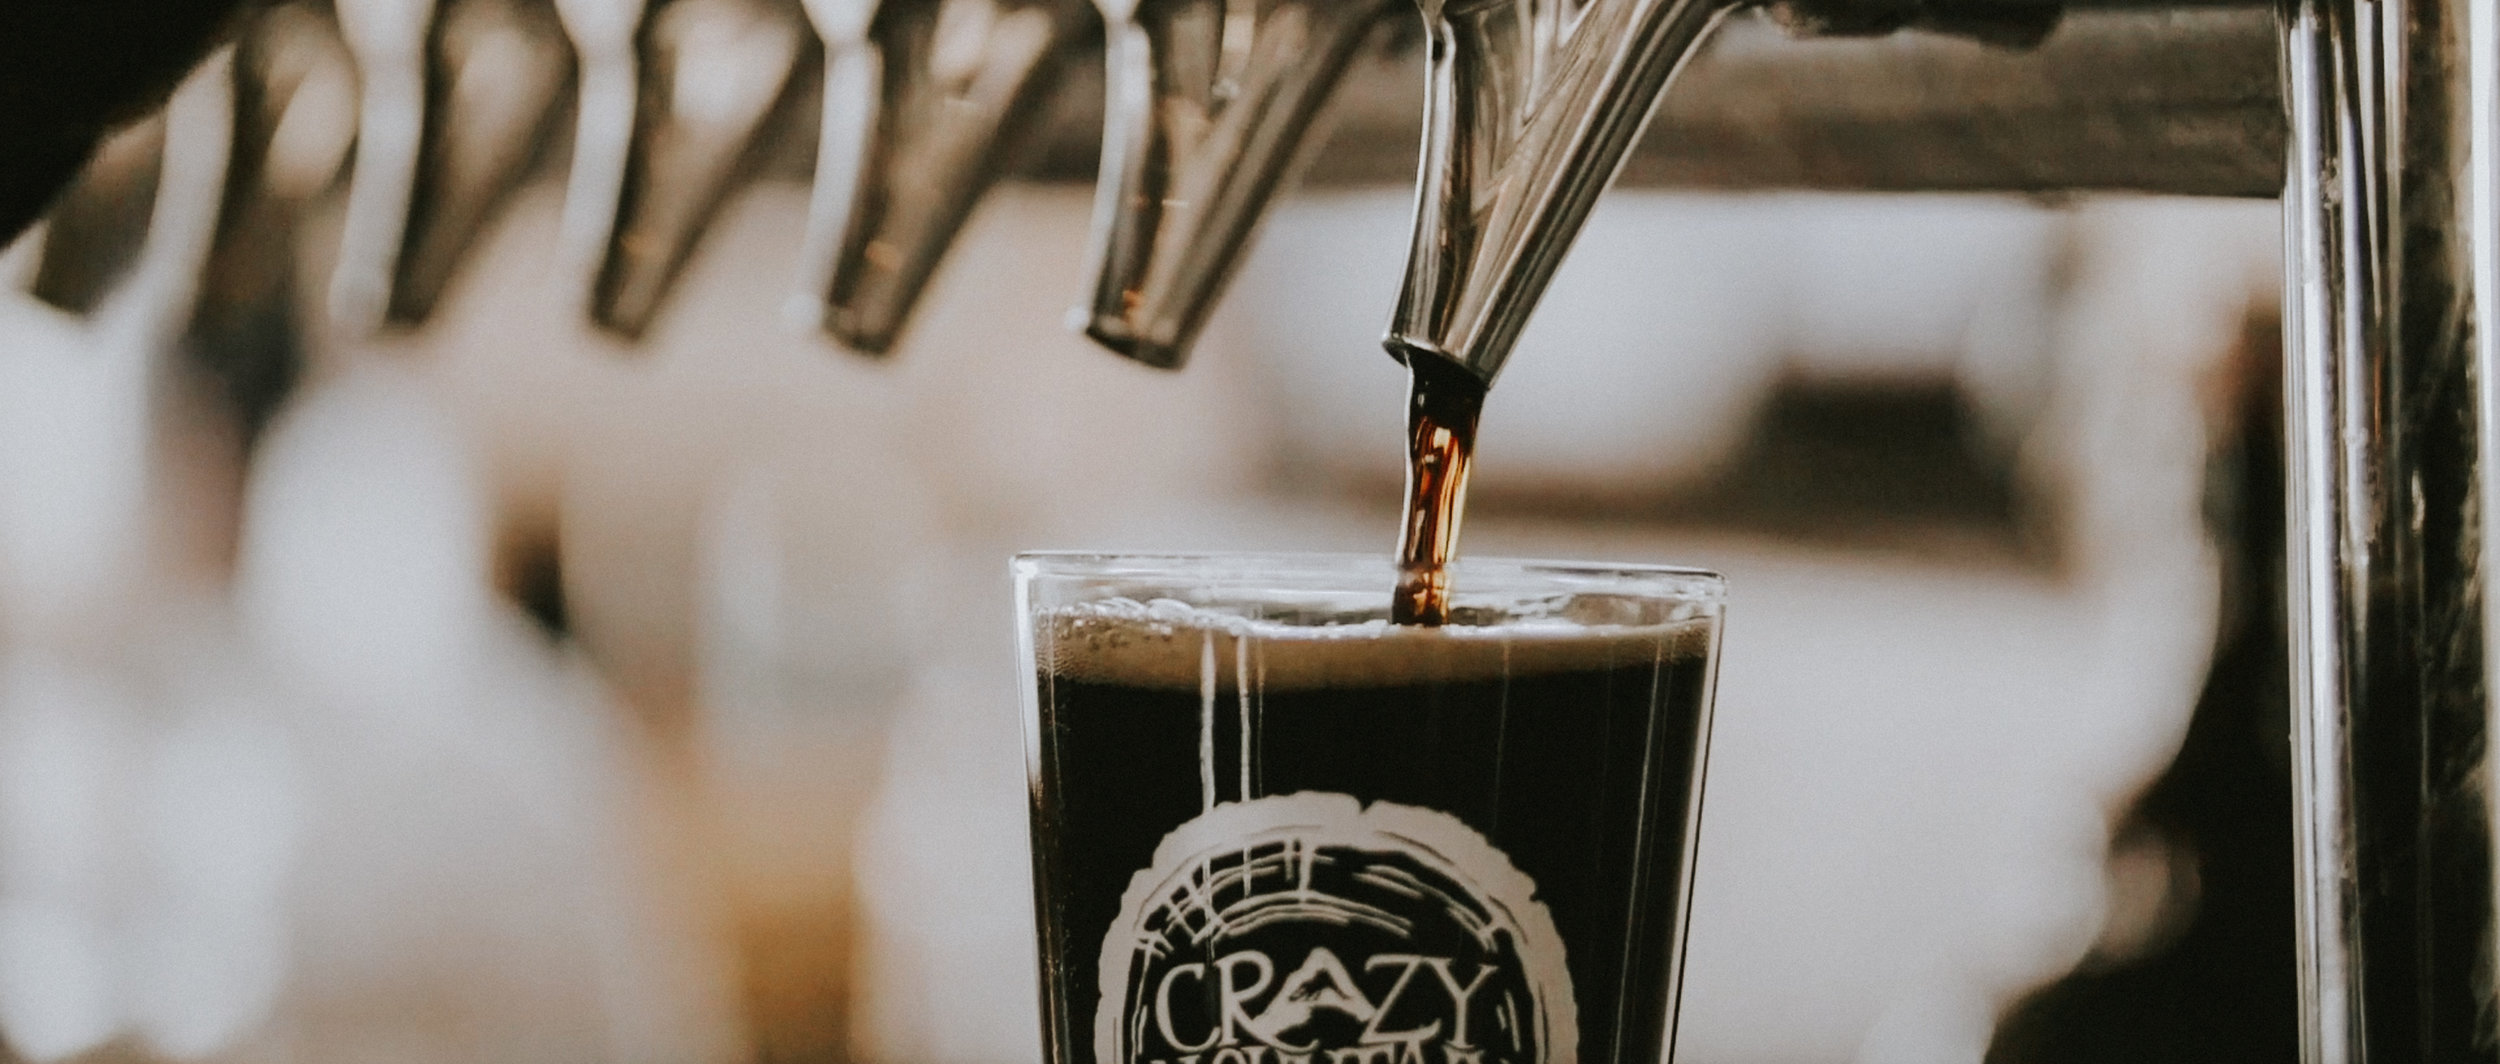 CRAZY MOUNTAIN BREWERY - Educational brand identity documentary about craft brewing accompanied by 30-second commercial for public television distribution for the largest Denver based craft brewery.Director: Ben GillespieEditing: Ben GillespieNarration: Rob Lowe